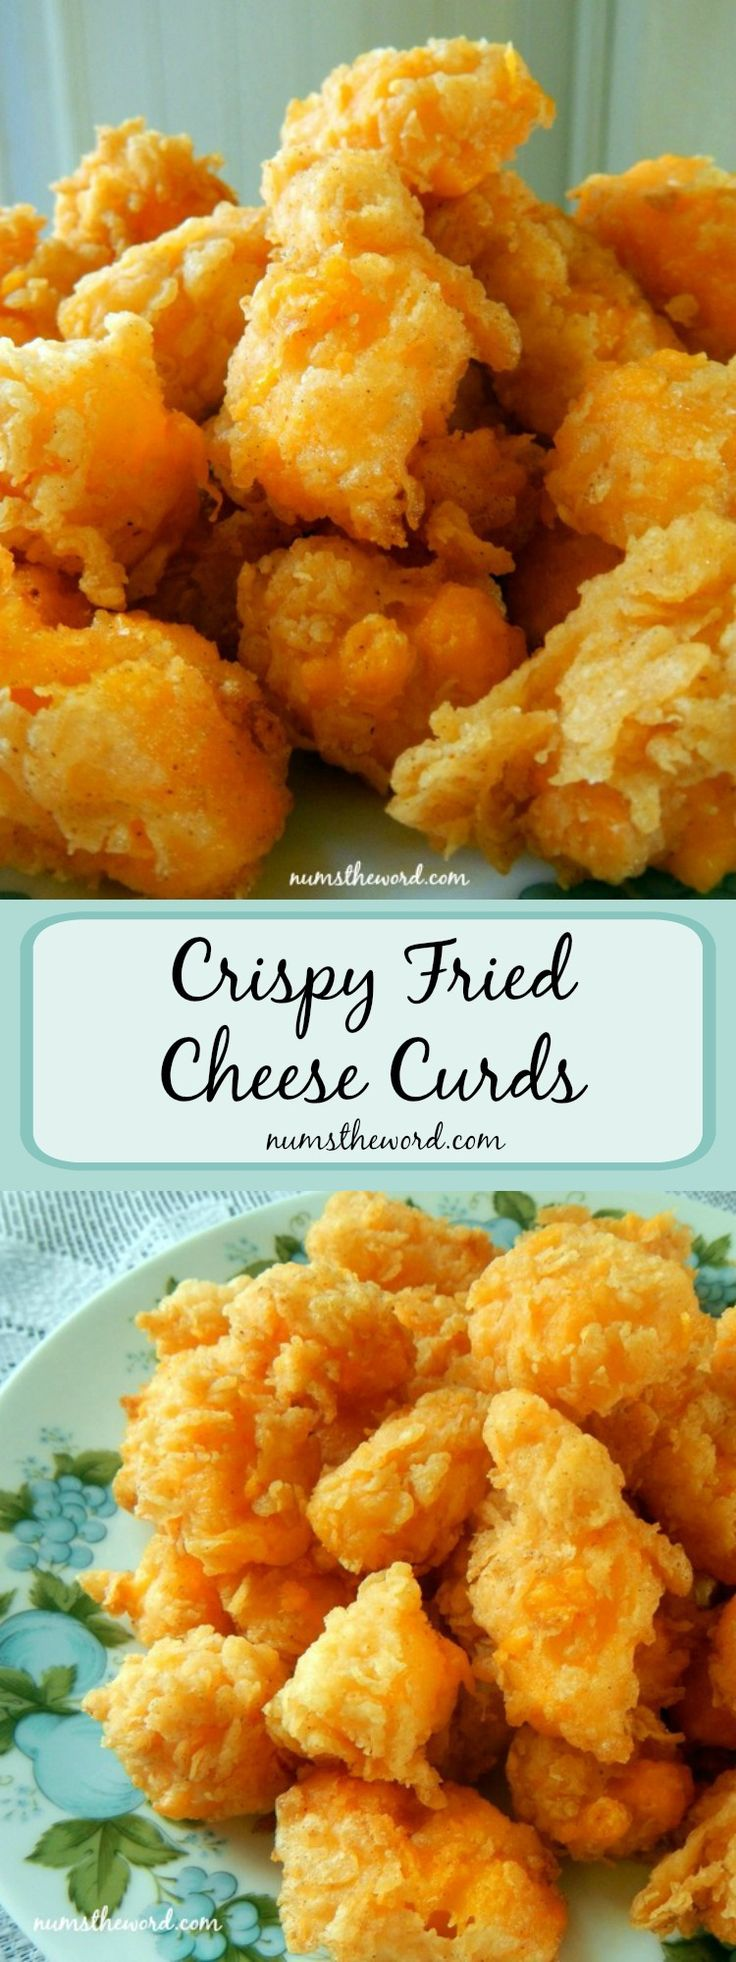 This non-alcoholic version of fried cheese curds is quick, easy and tasty! A hint of cayenne pepper with a crispy texture will become a new favorite of yours! Ready in 20 minutes!